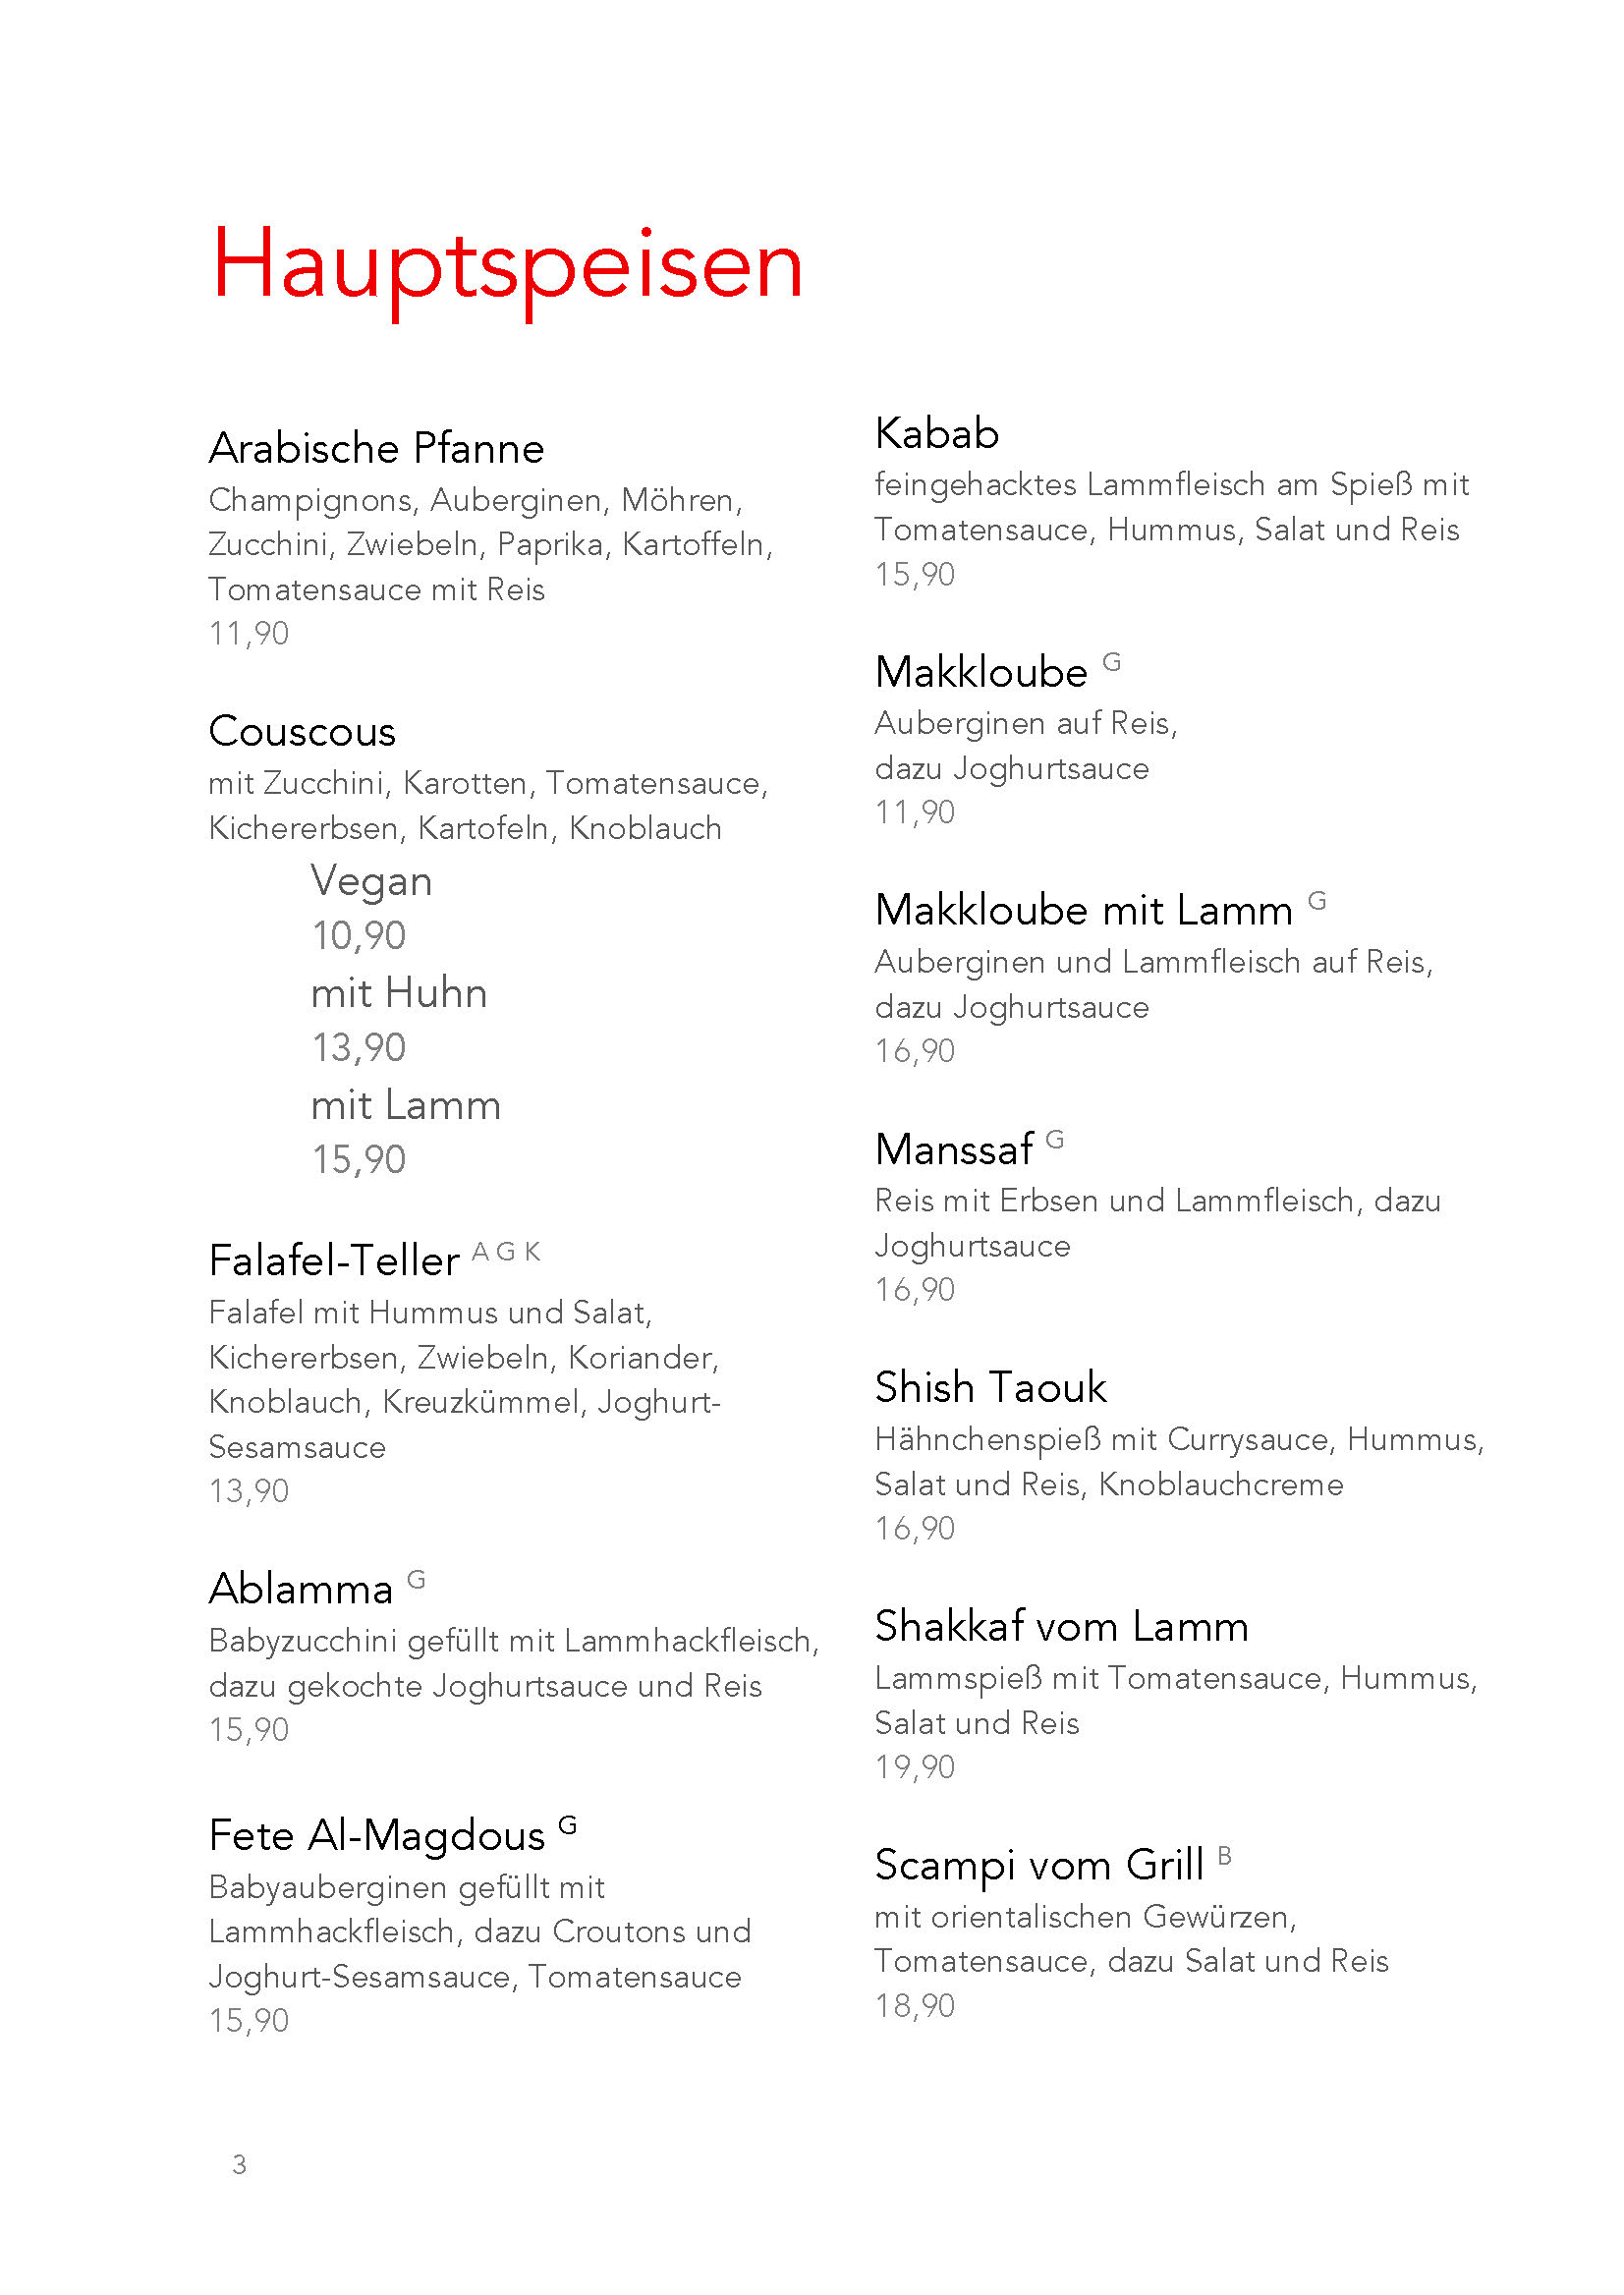 LAWRENCE berlin mitte arabisches restaurant arabic restaurant menu speisekarte catering lunch dinner abendessen abendkarte